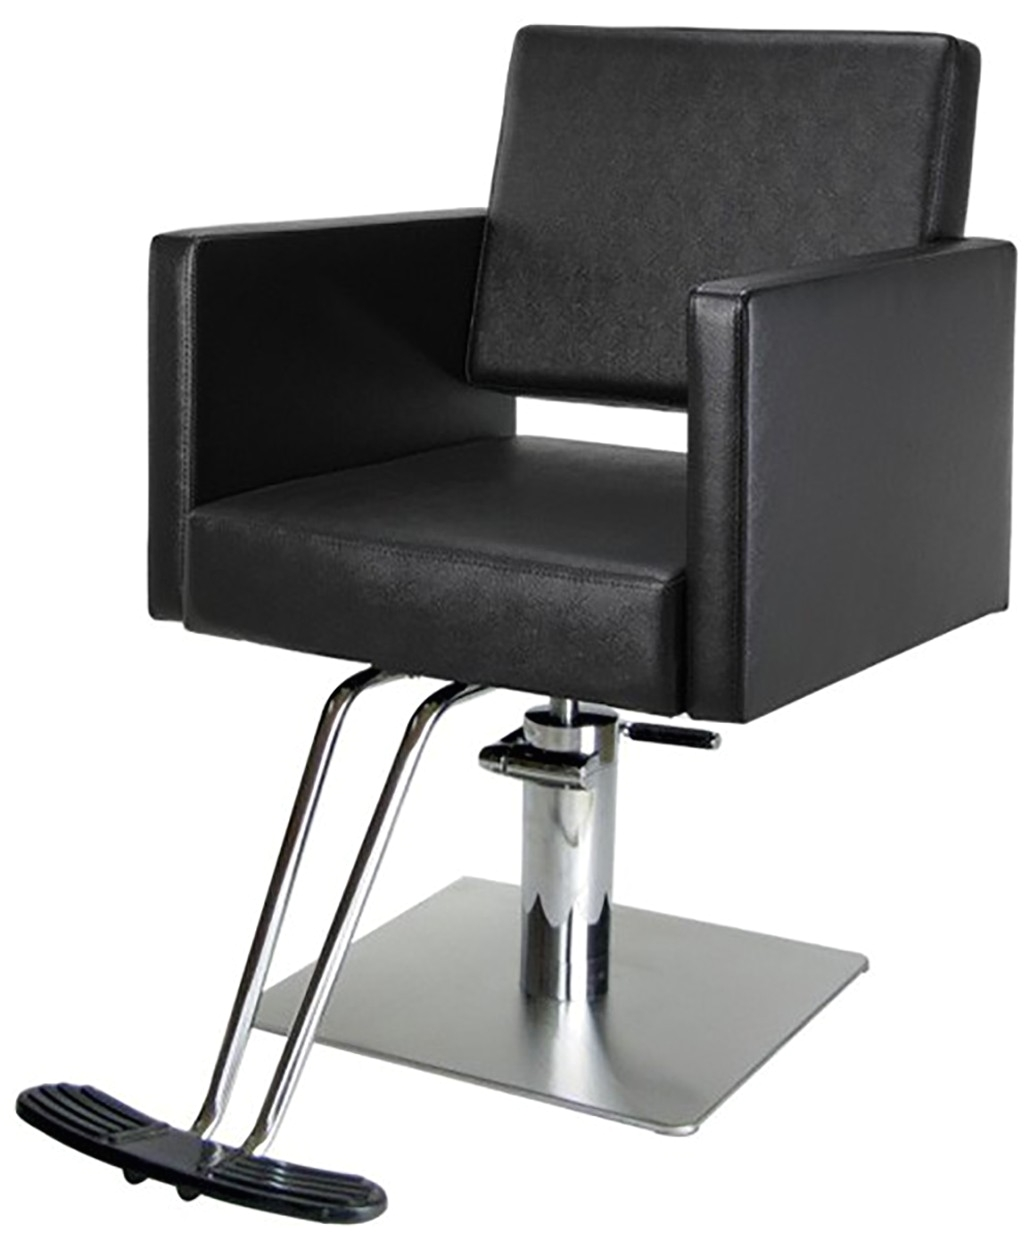 used barber chair for sale rv couches and chairs in atlanta salon styling hairdresser hair